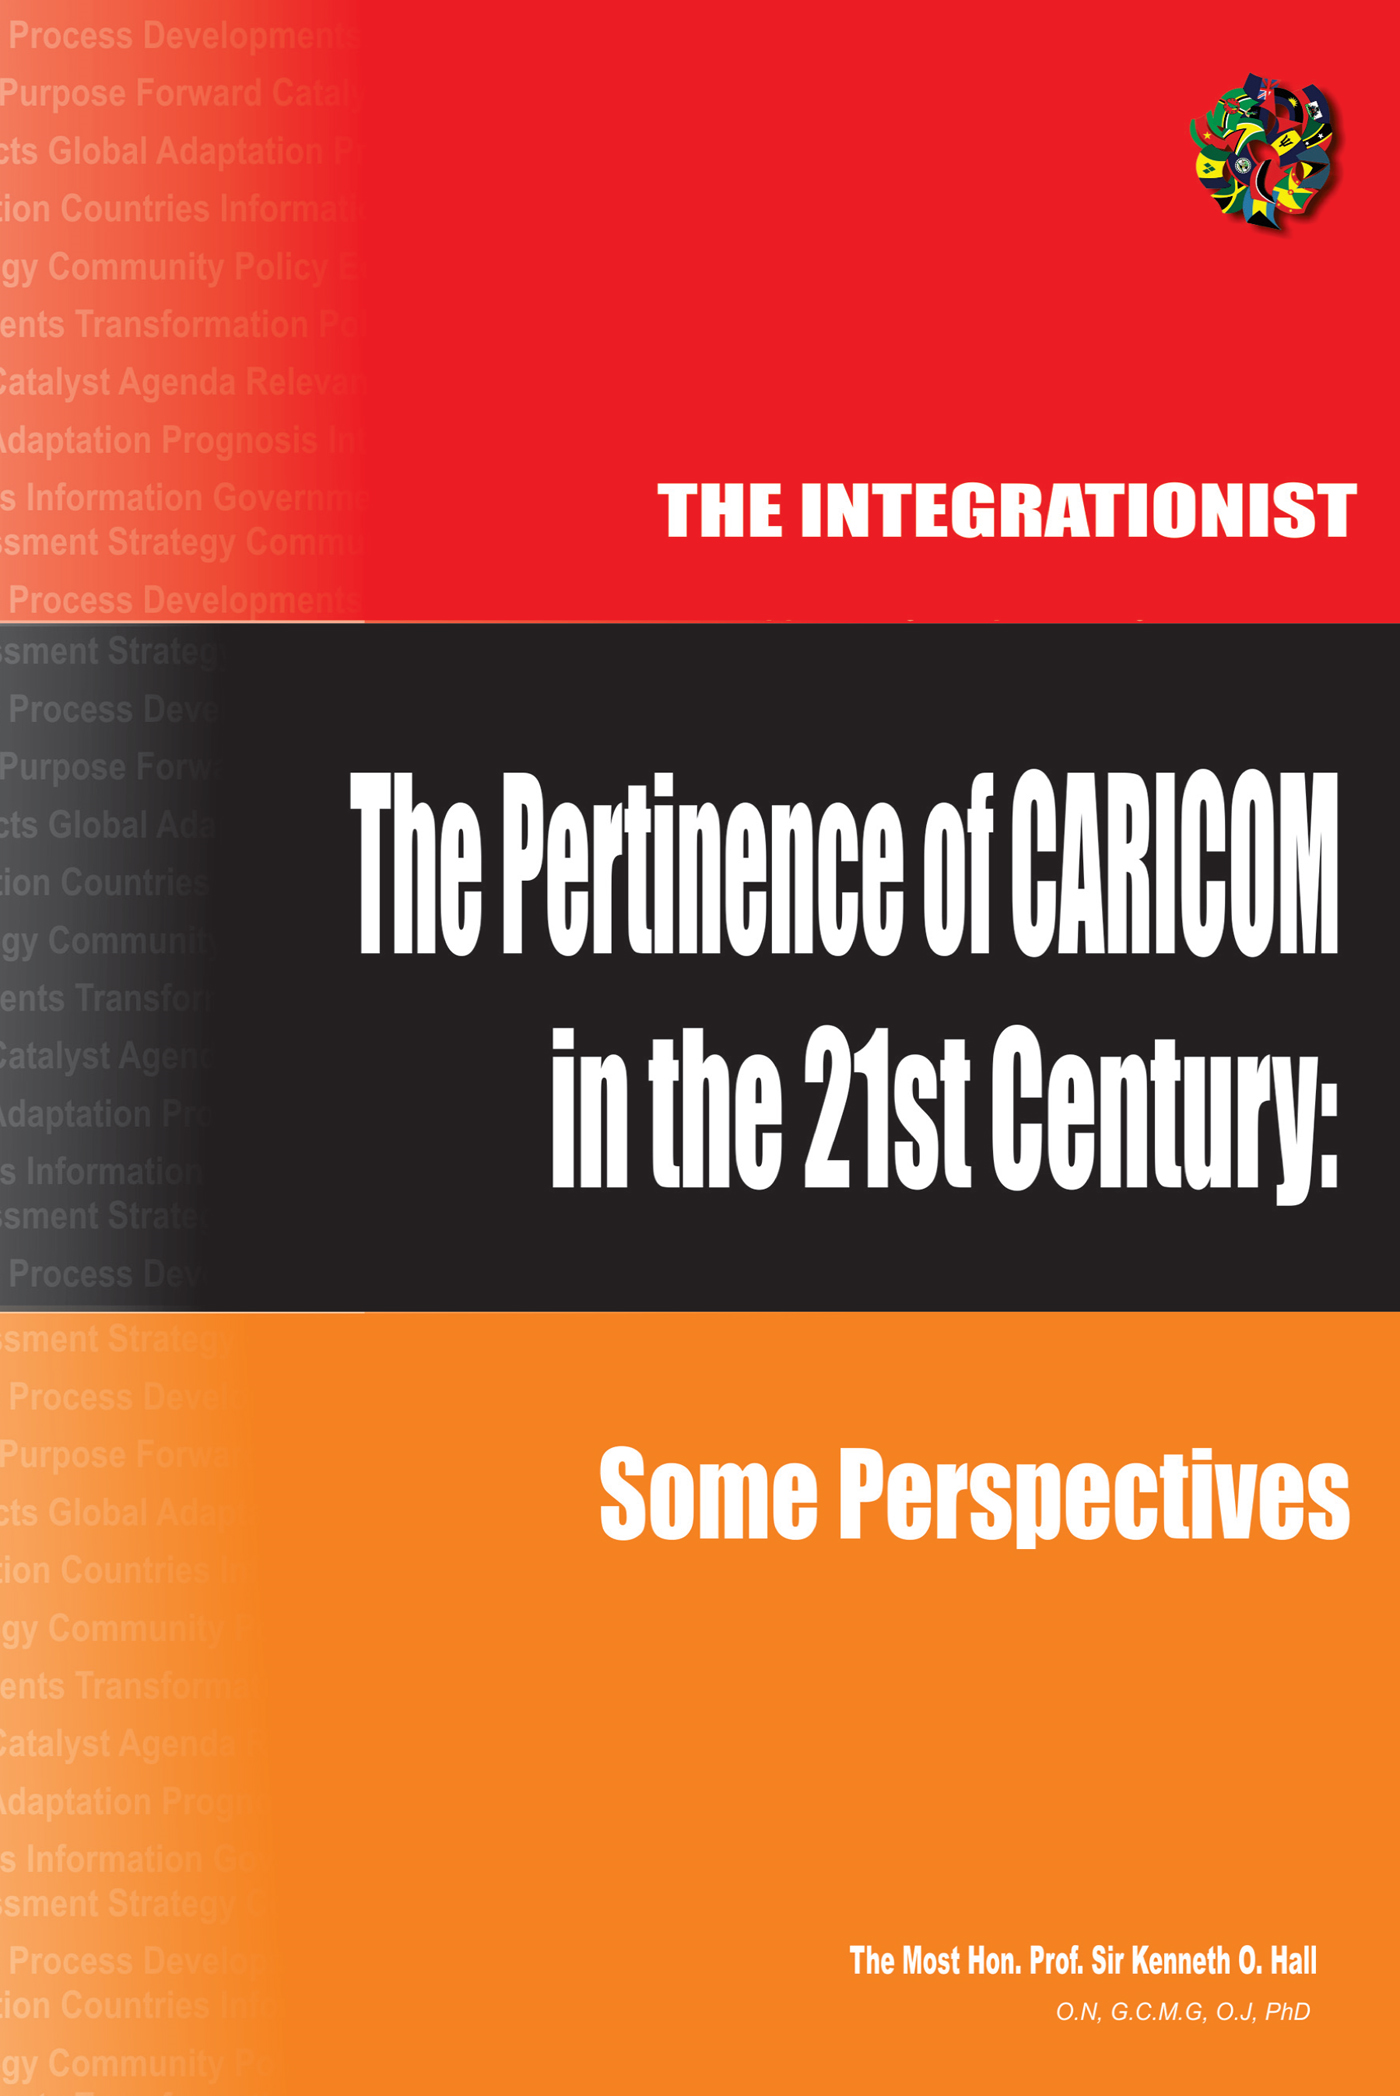 The Pertinence of CARICOM in the 21st Century: Some Perspectives